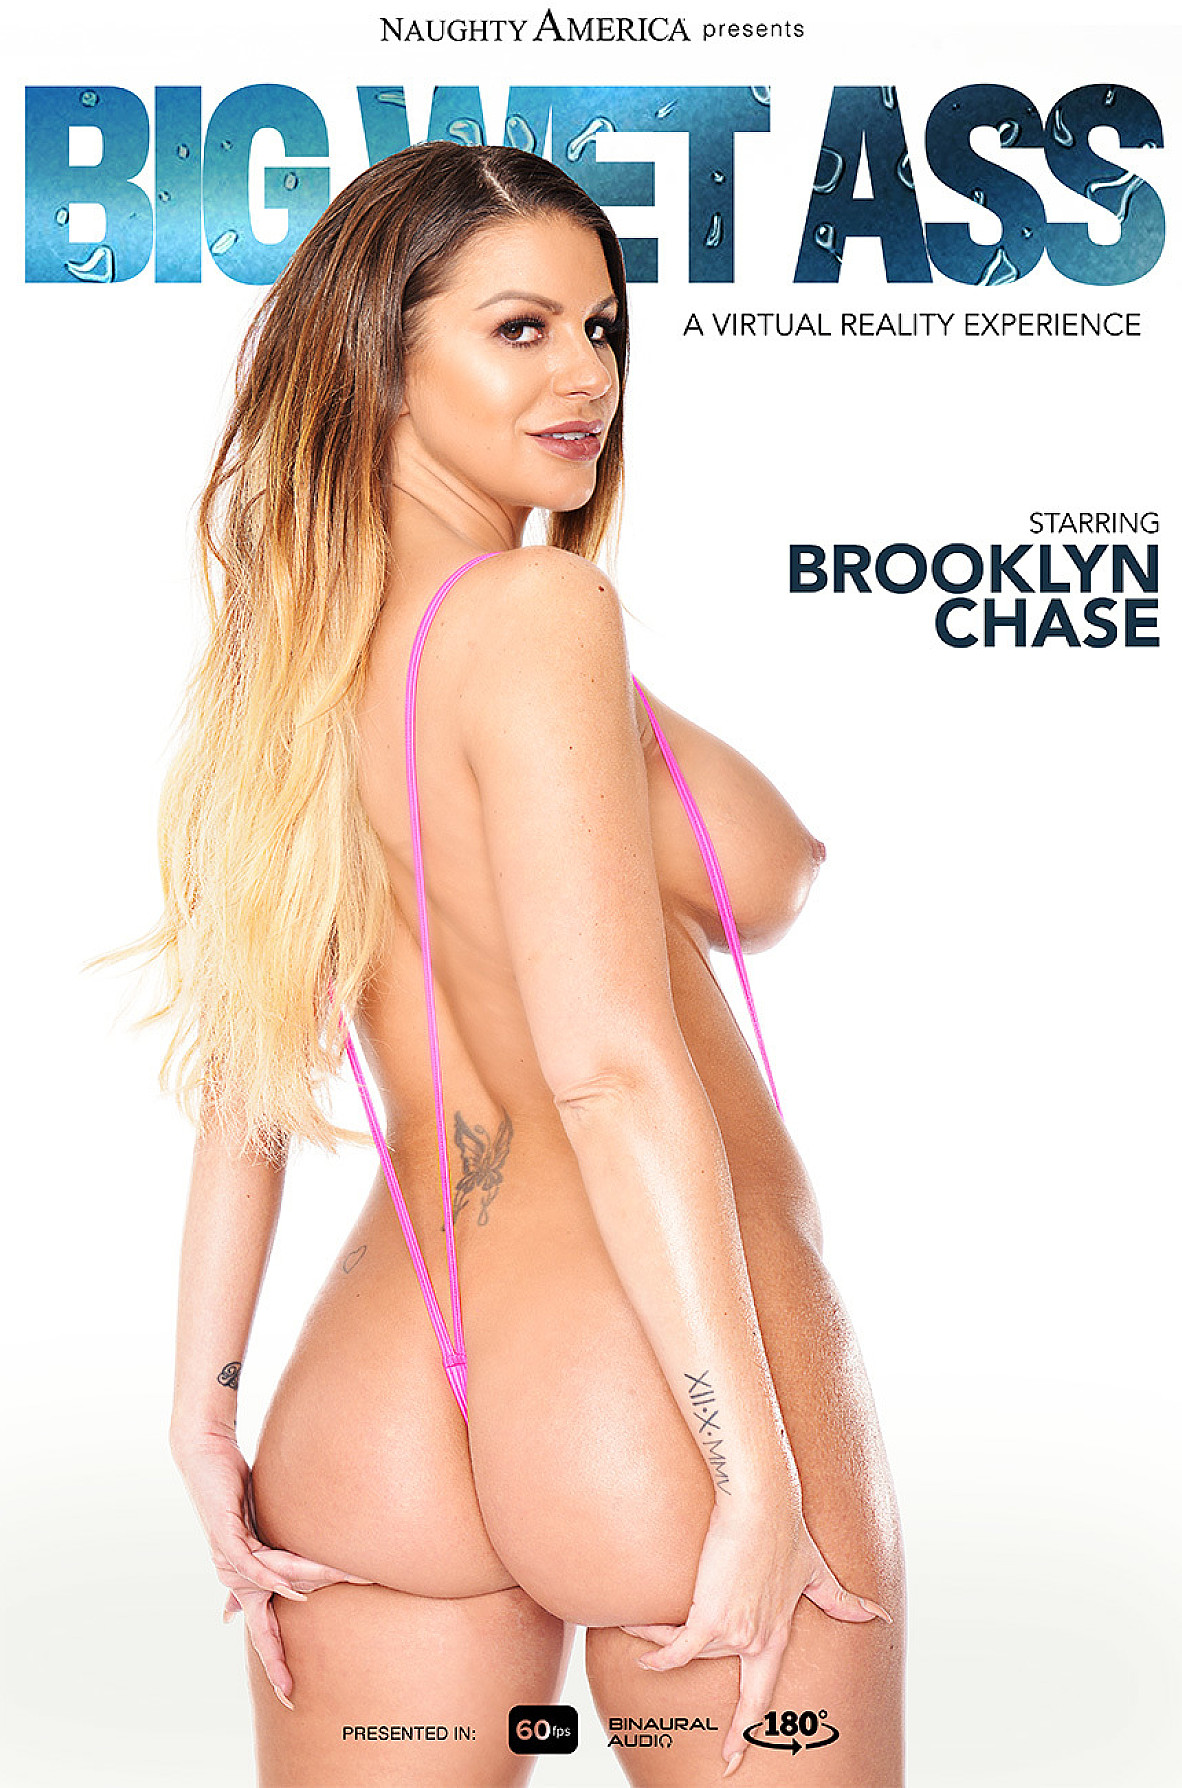 Watch Brooklyn Chase and Ryan Driller VR video in Naughty America